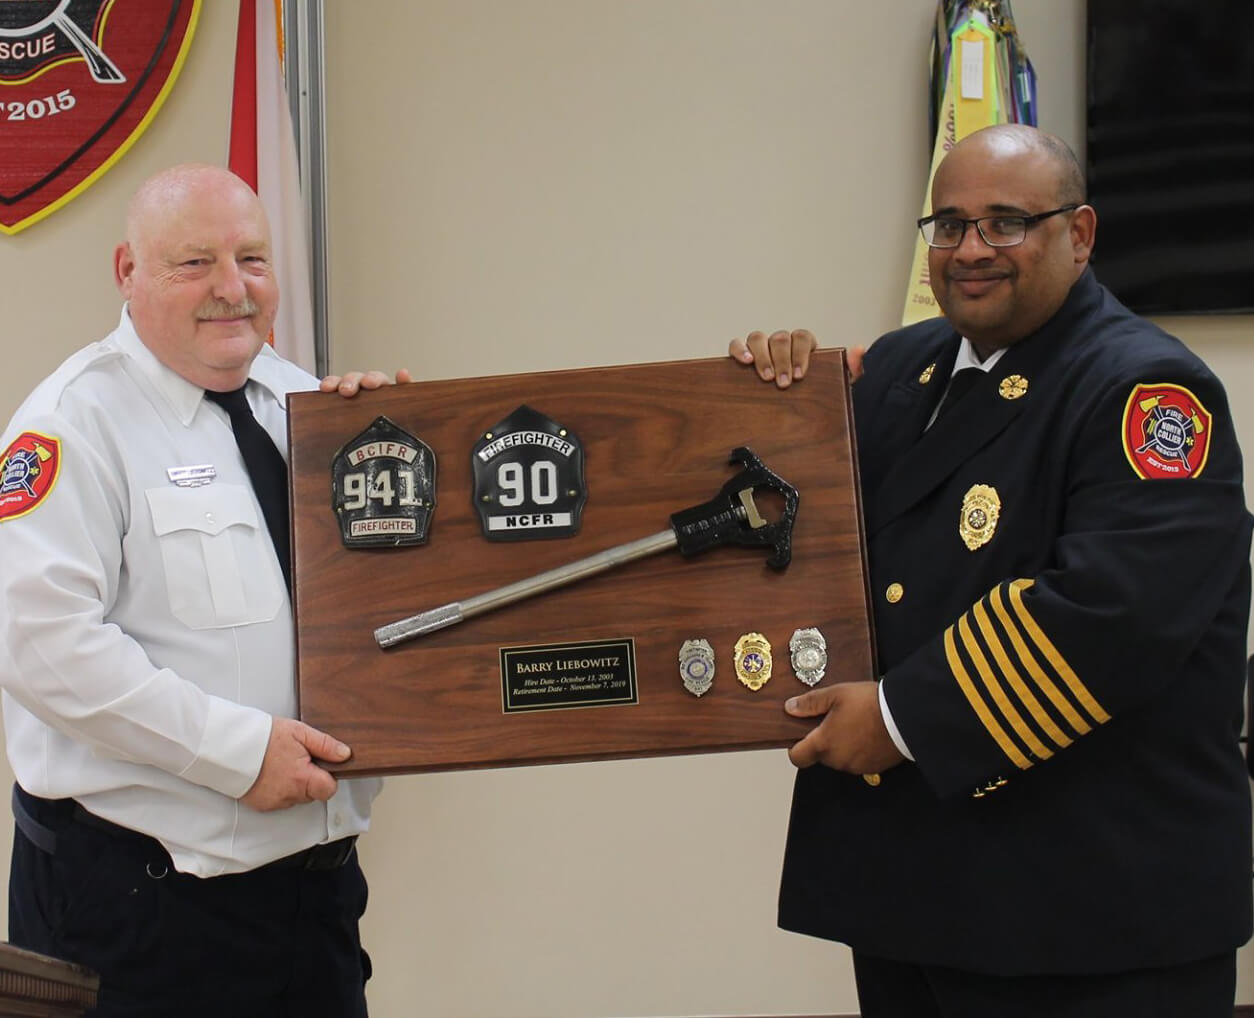 Firefighter Liebowitz Retires